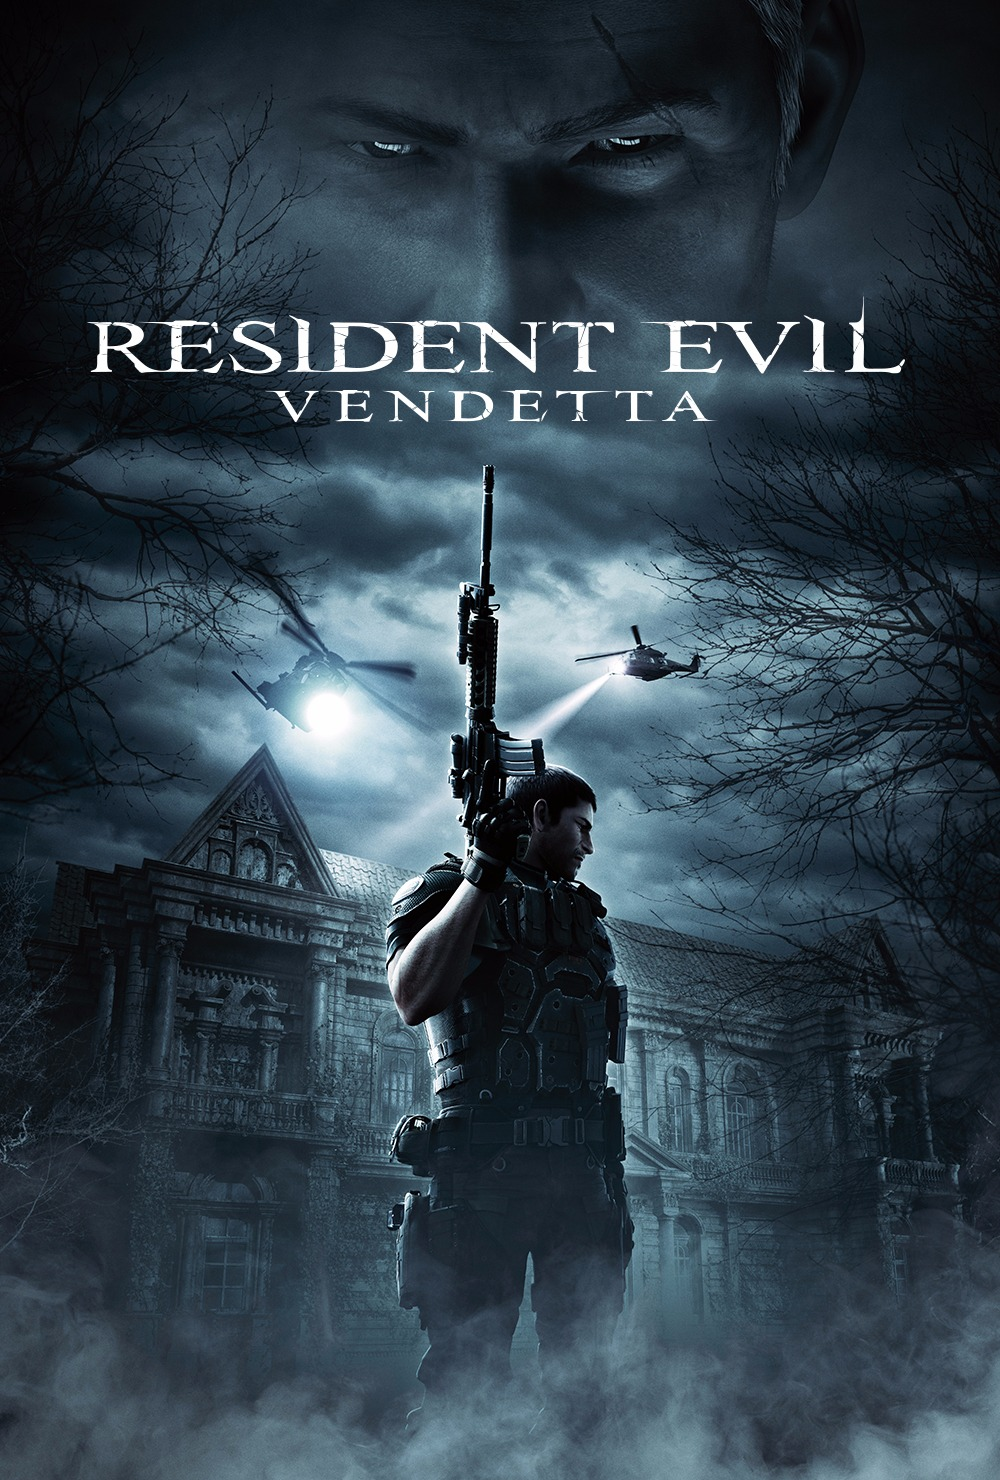 Highly Anticipated CG Animated Film  'RESIDENT EVIL: VENDETTA' to Hit Cinemas Worldwide, Including Exclusive North American Event on June 19